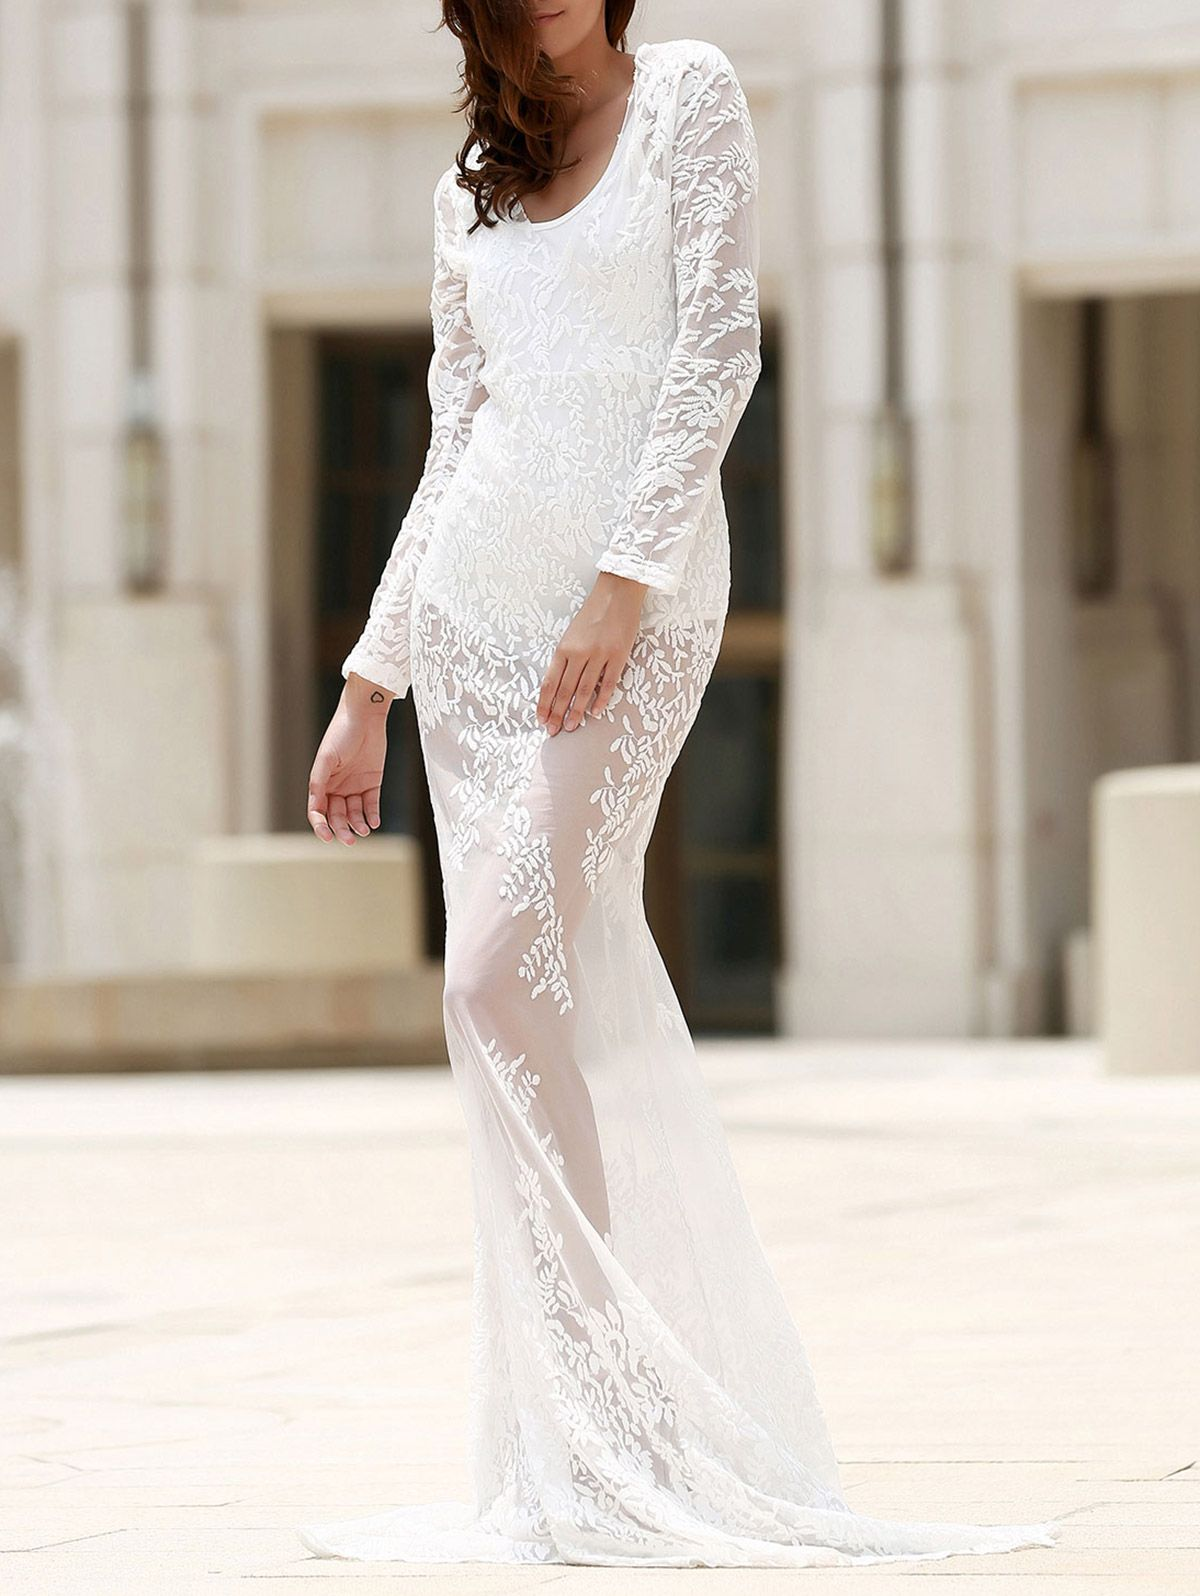 Prom plunging neck long sleeve lace dress summer inspiration